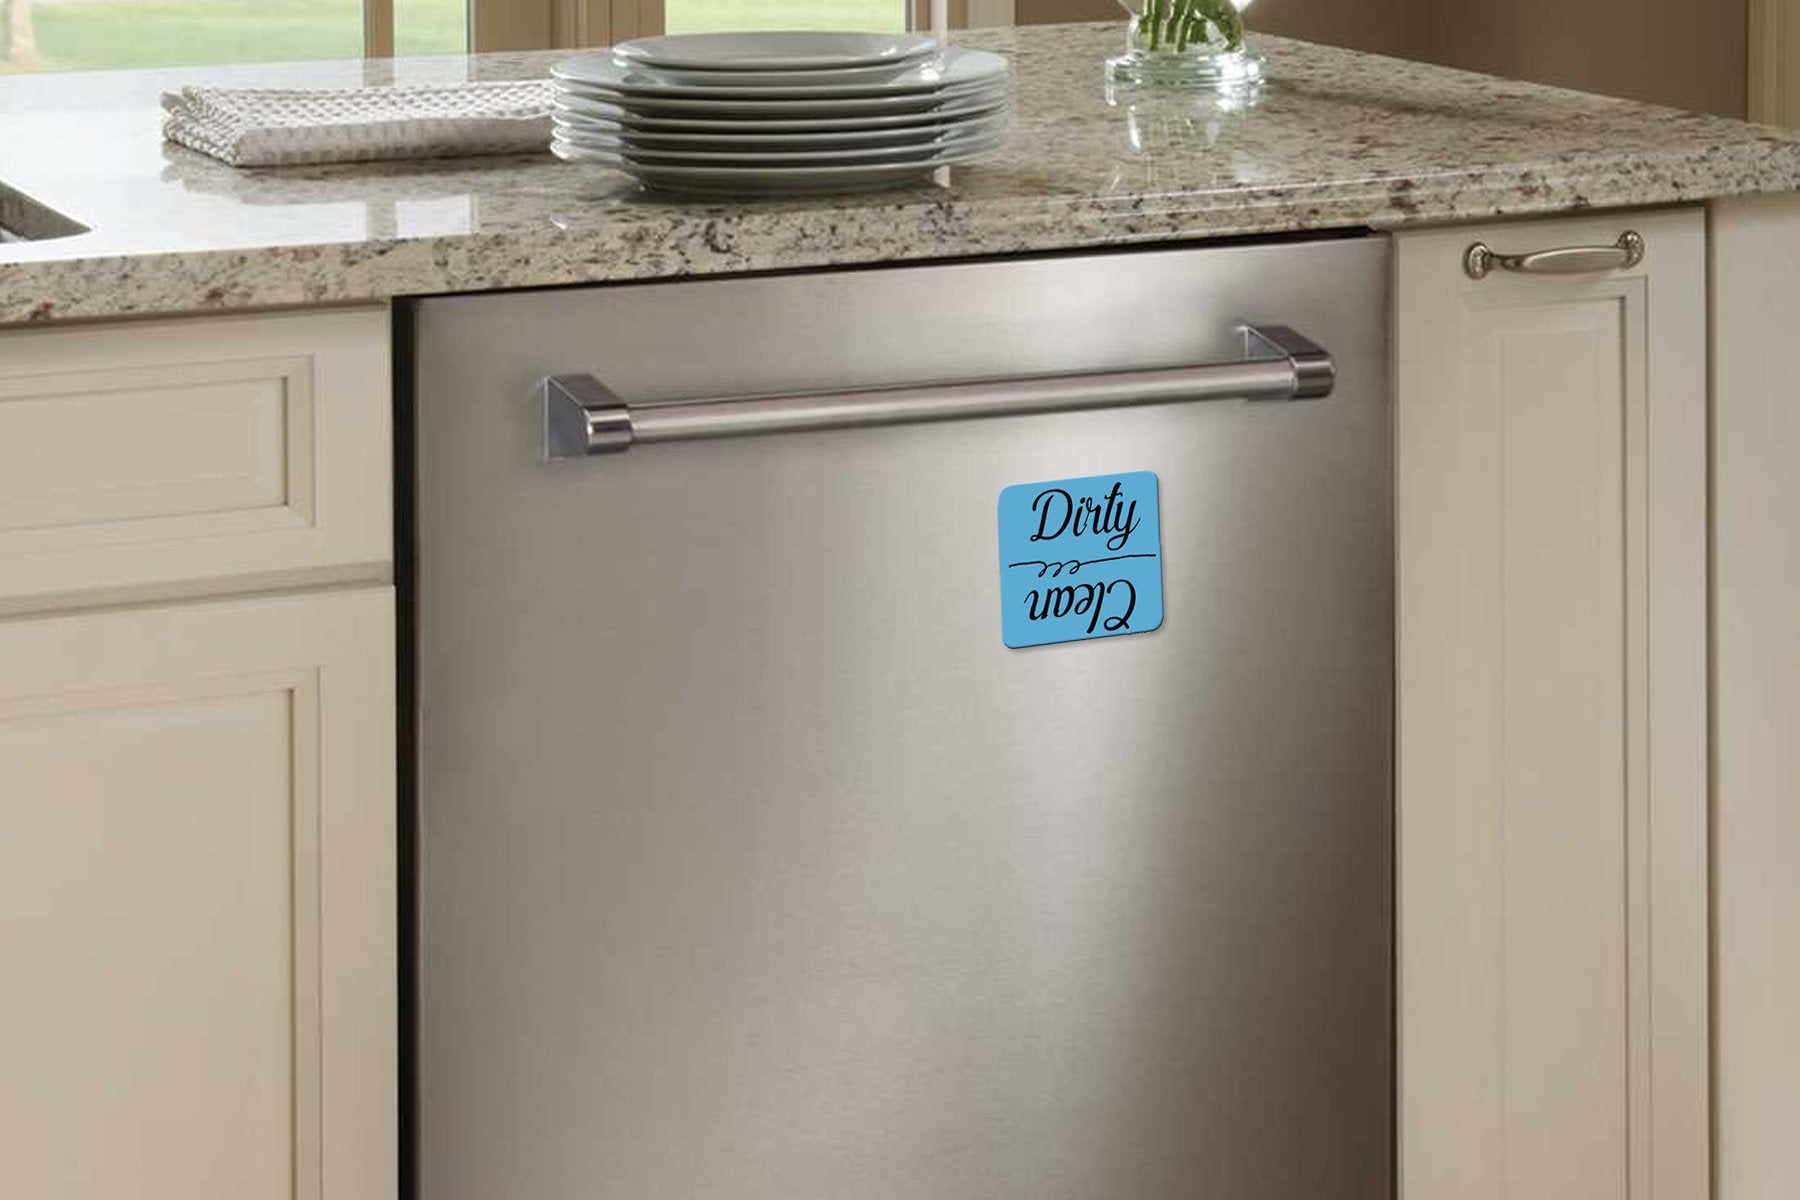 Dirty/Clean Dishwasher Magnet - Guestbookery